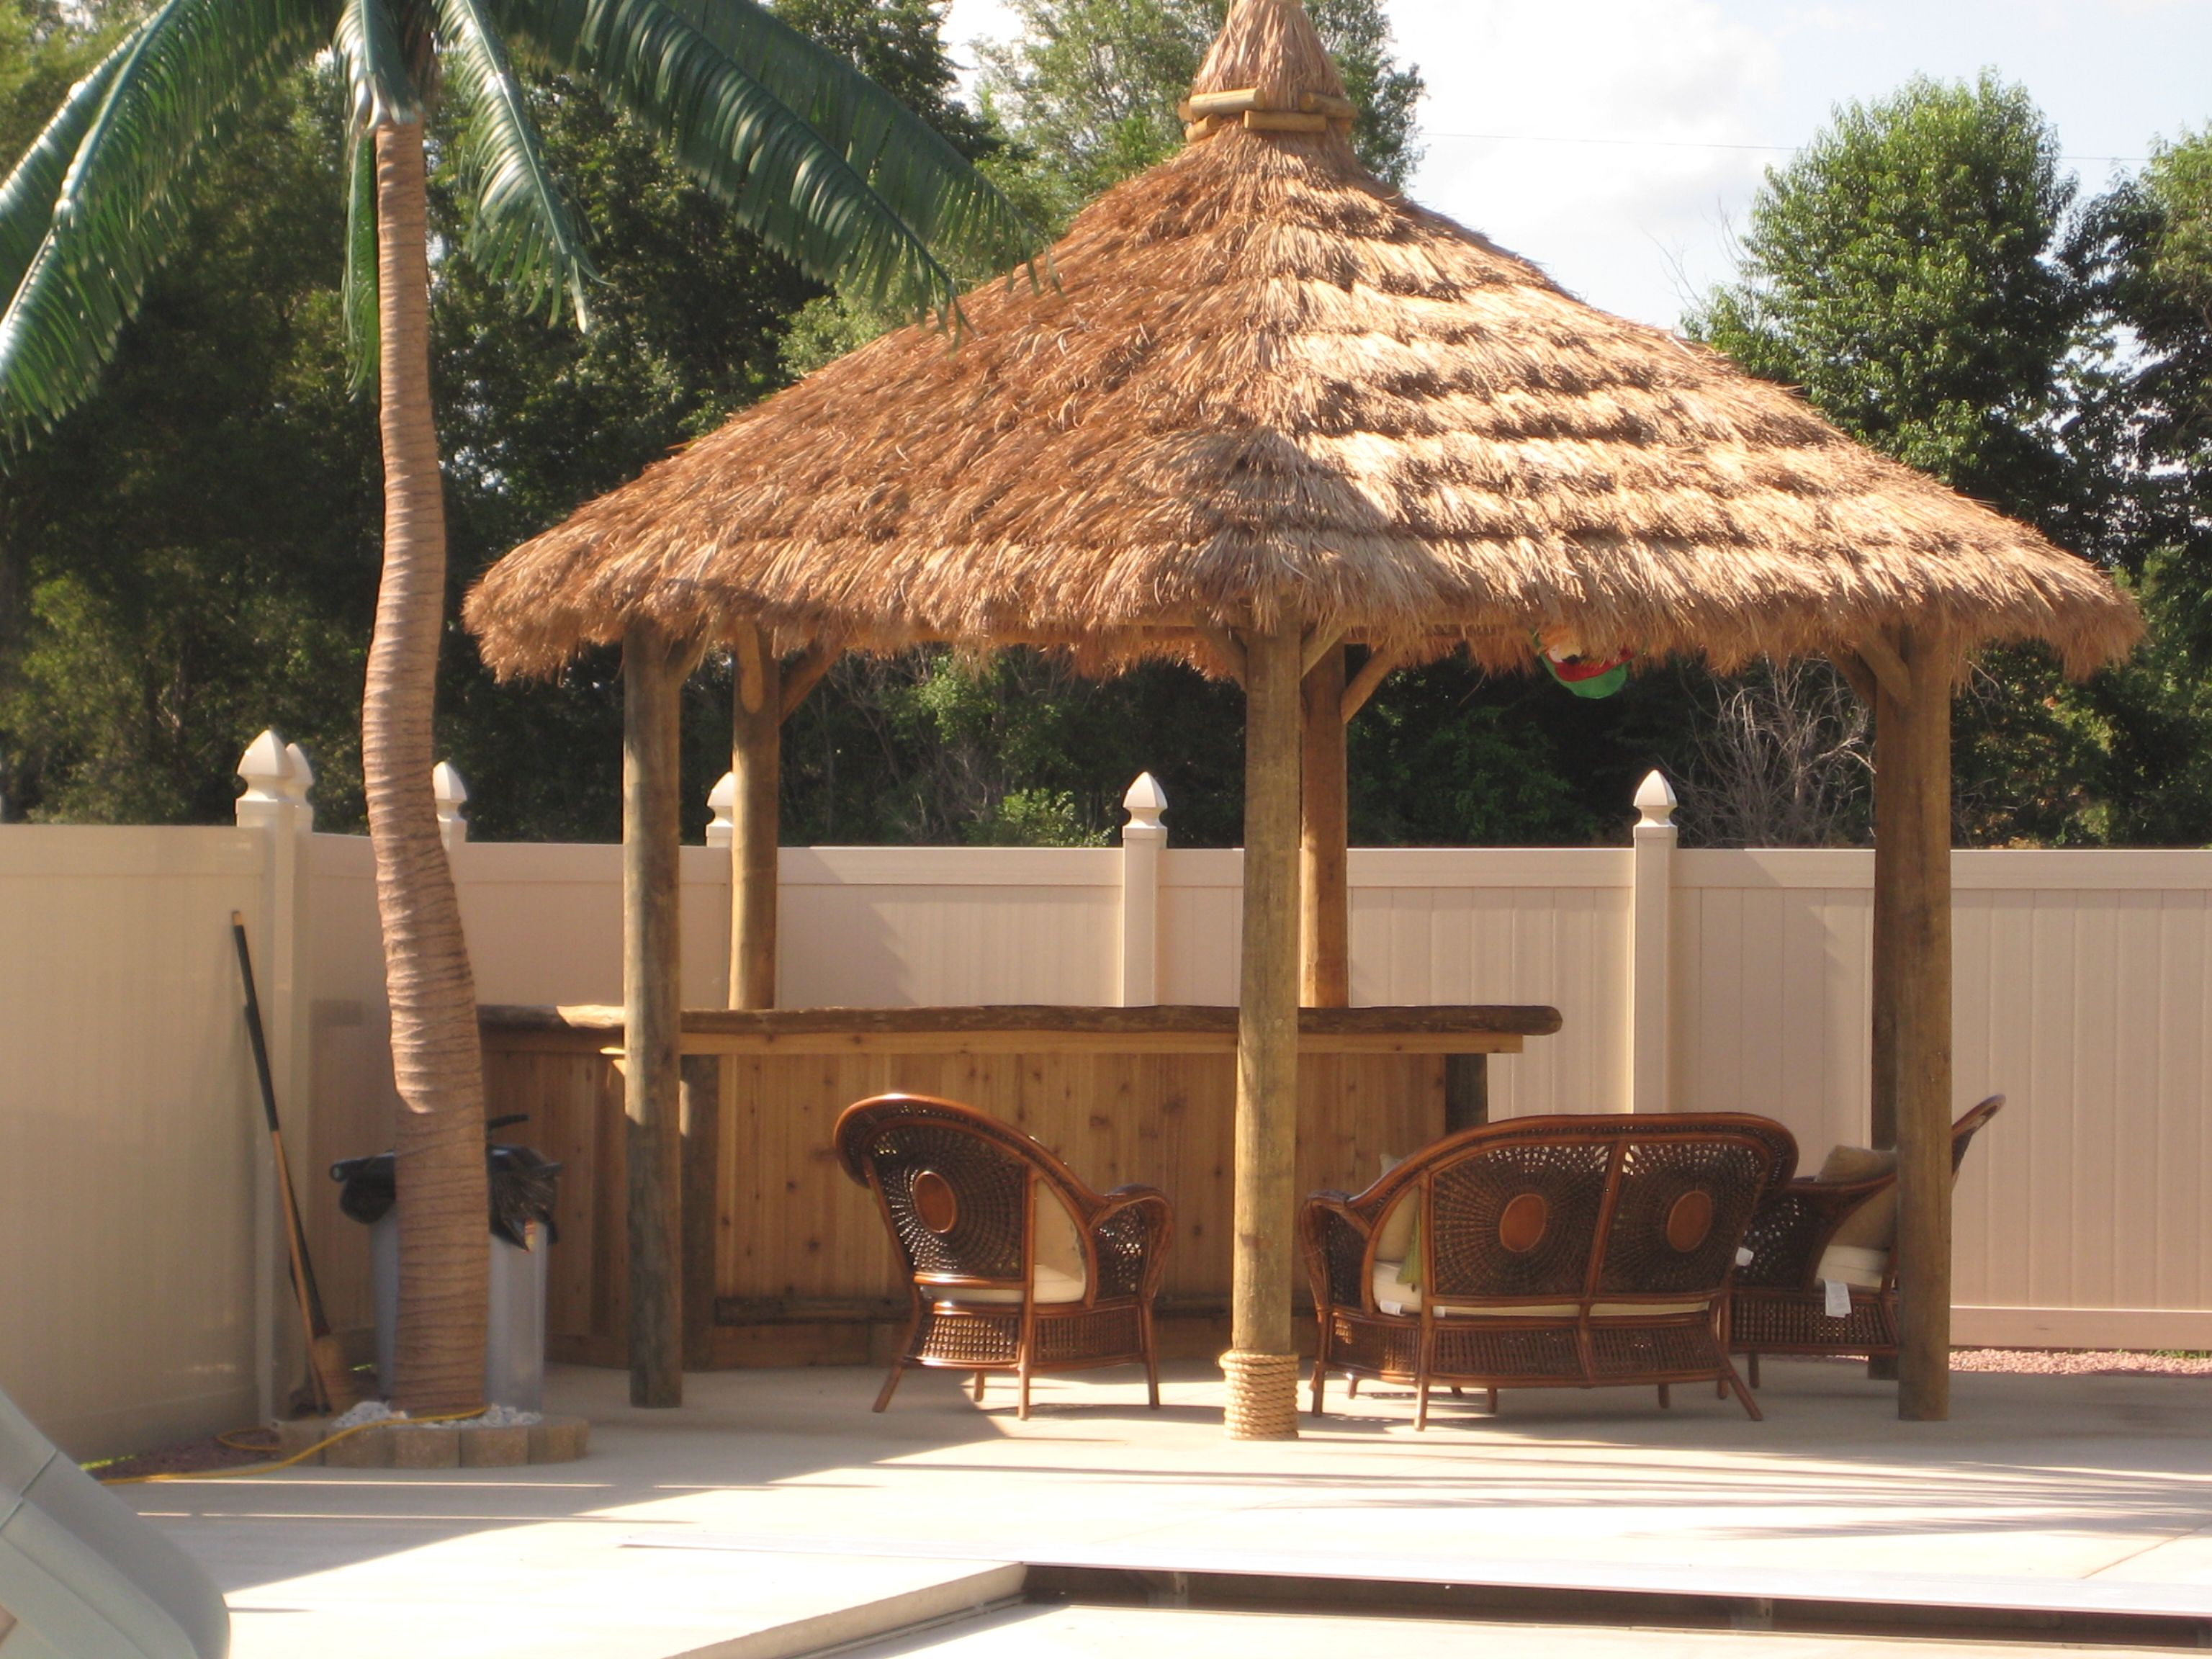 Thatch Roof Kits For Deck How Make Tiki Hut Palm Leaf Roof Ehowcom with 11 Some of the Coolest Ways How to Build Backyard Tiki Hut Ideas